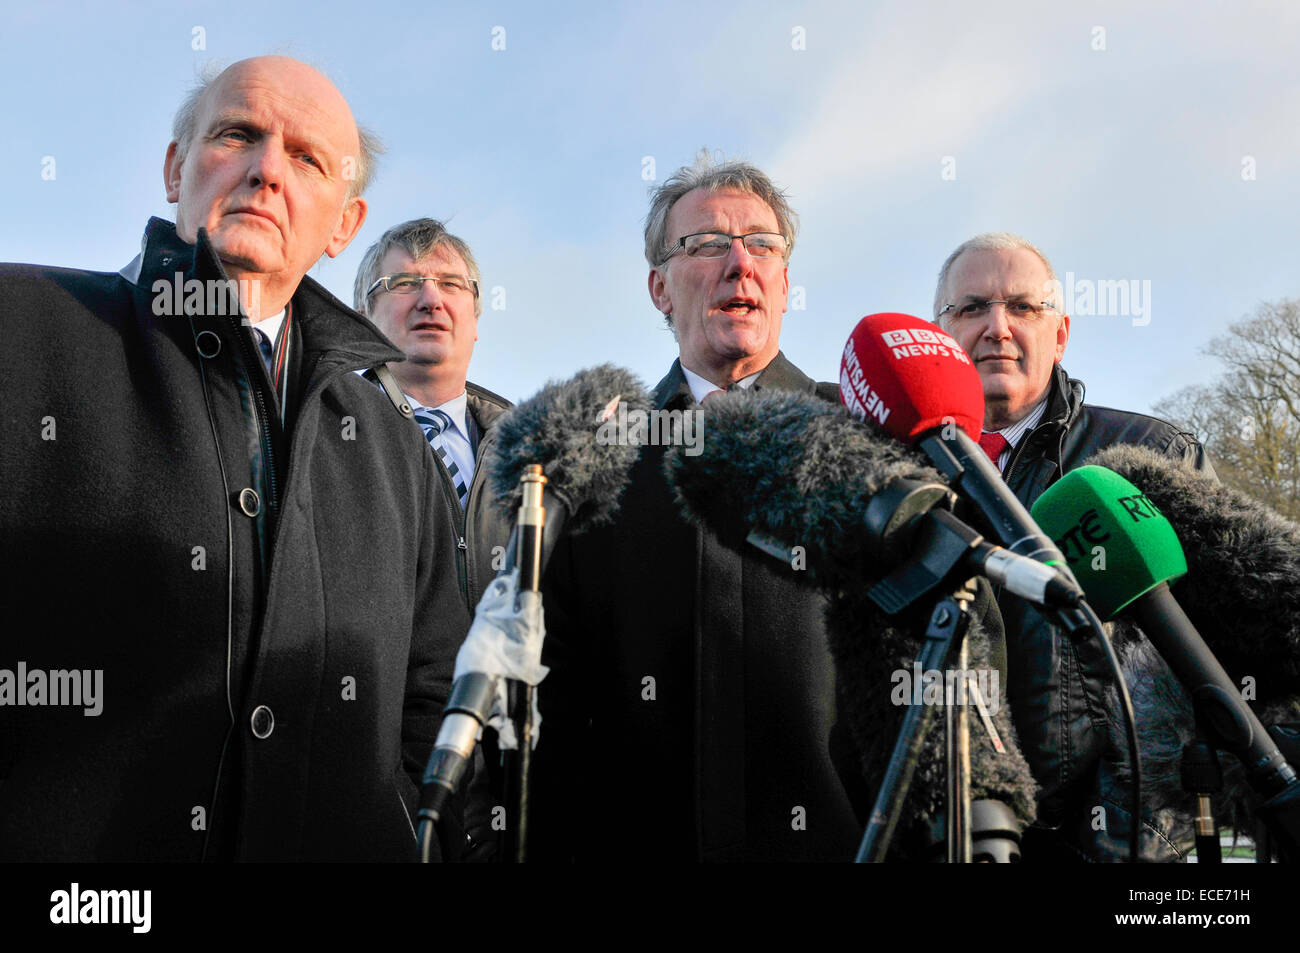 Belfast, Northern Ireland, 12 Dec 2014 - Michael McGimpsey, Tom Elliott, Mike Nesbitt and Danny Kennedy from the - Stock Image